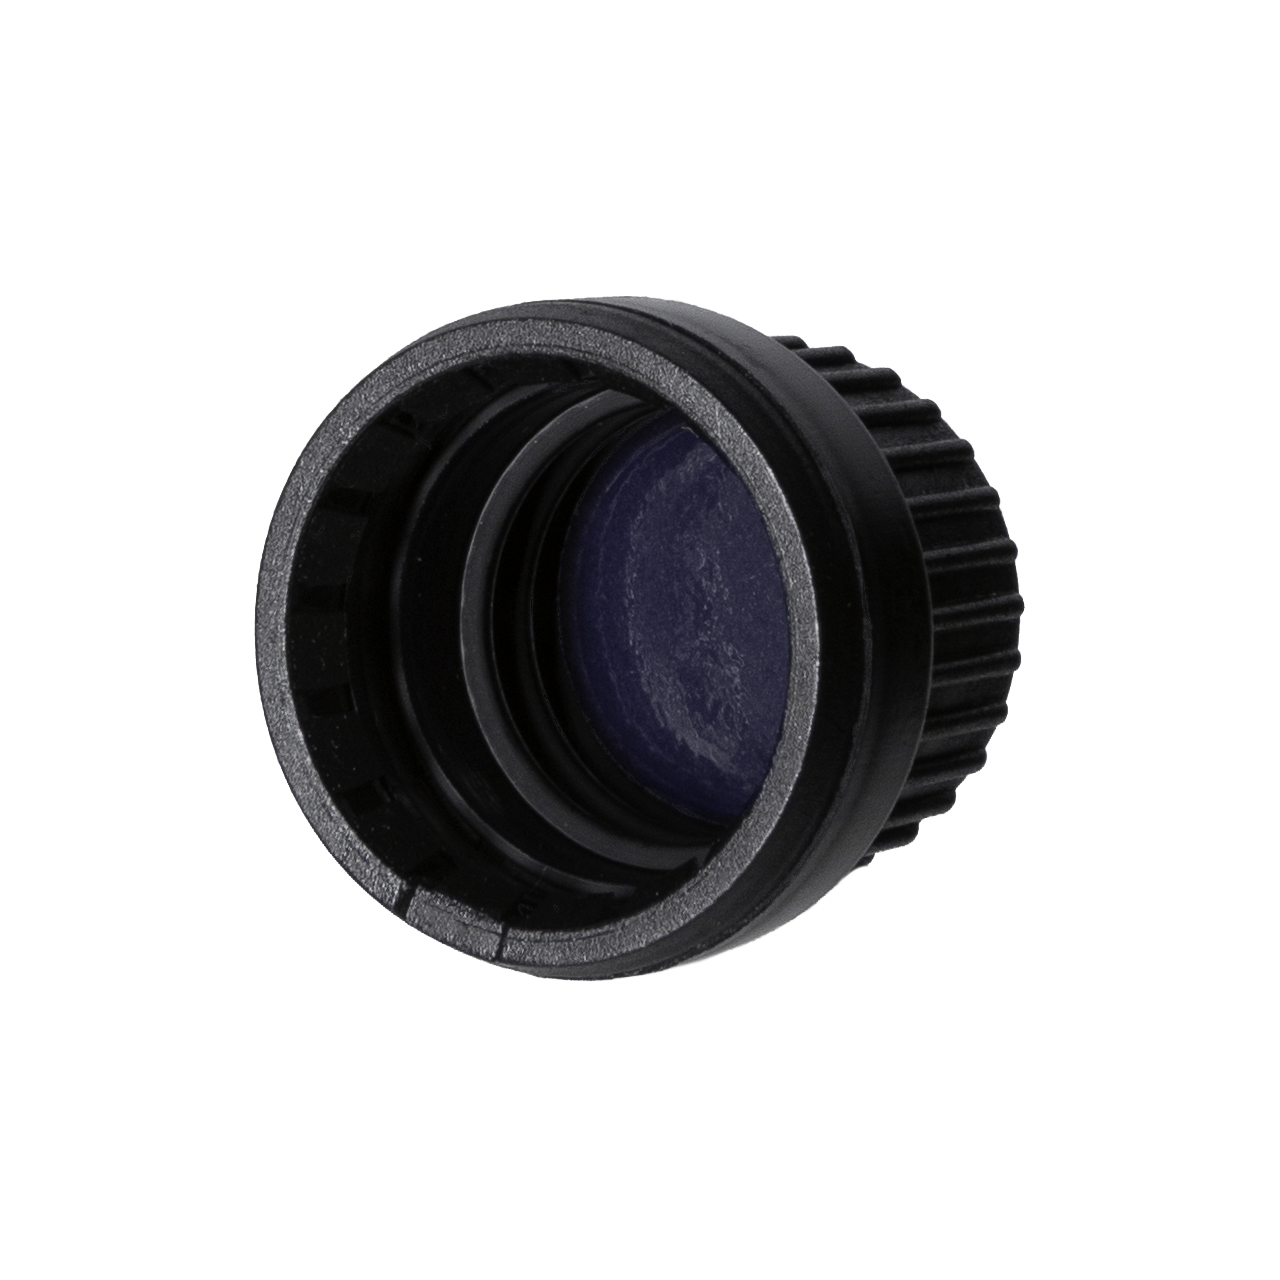 Tamper-evident closure DIN18, series III, PP, black matt, ribbed with violet Phan inlay (for Orion 5-100 ml)